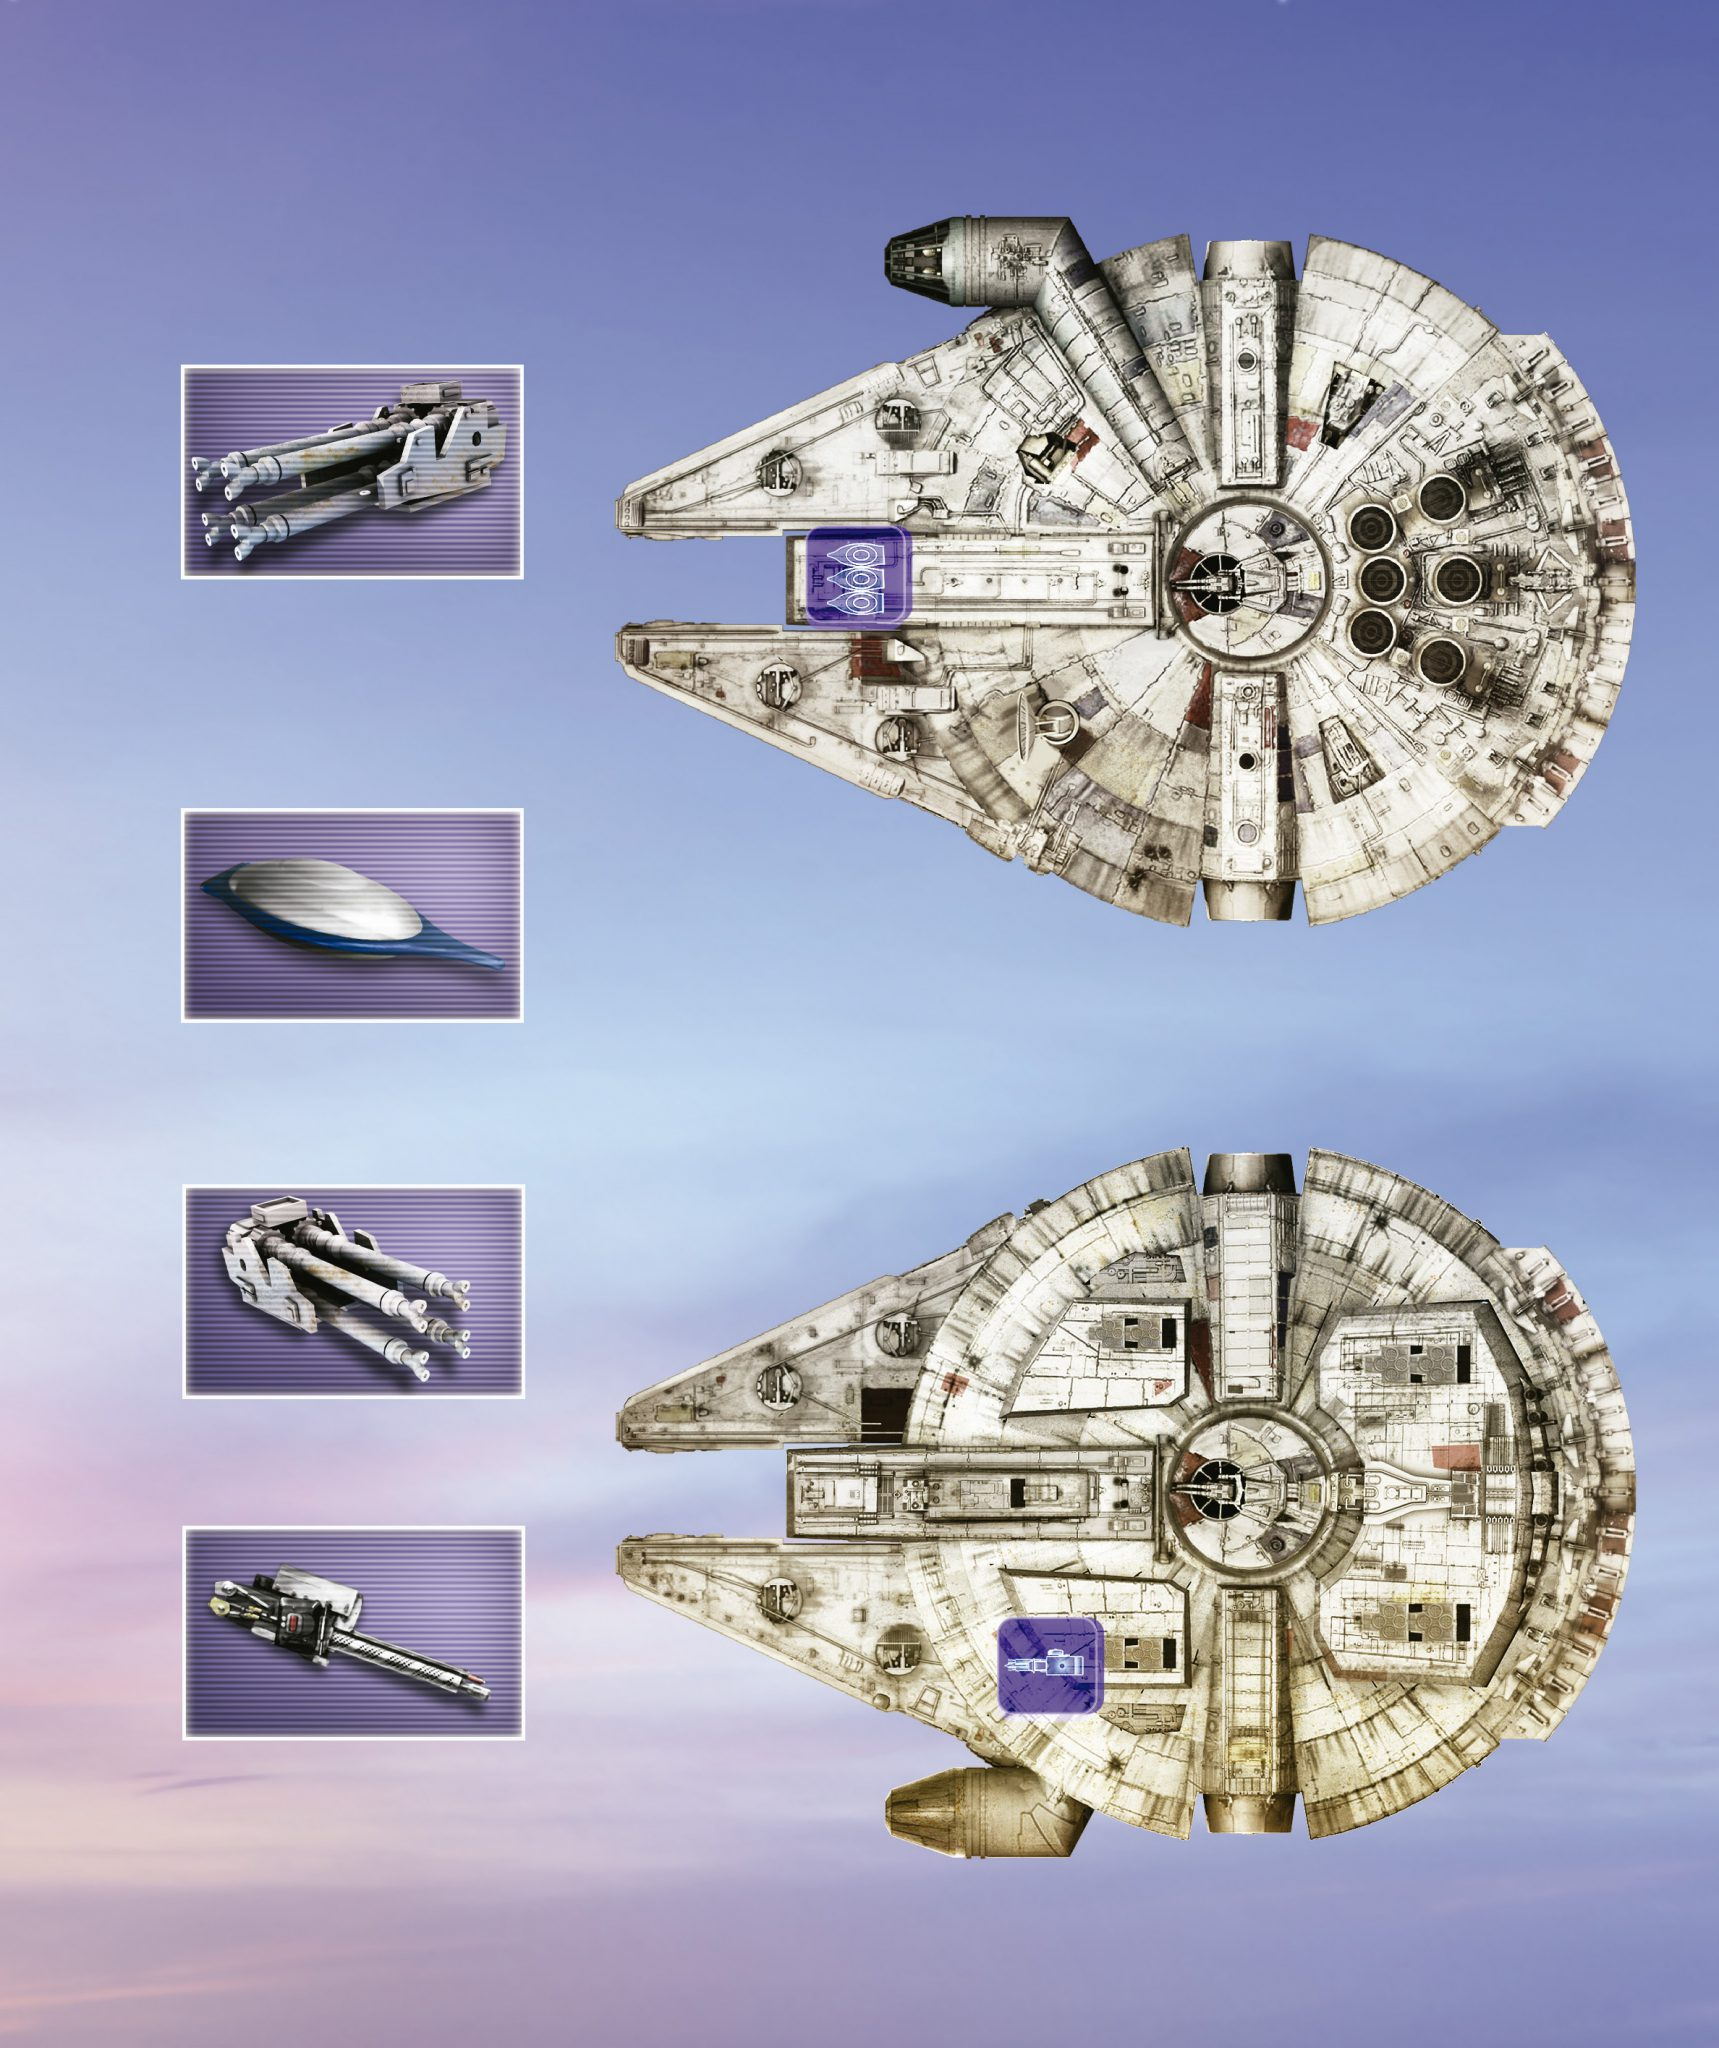 camucada STAR WARS millenium falcon arsenal